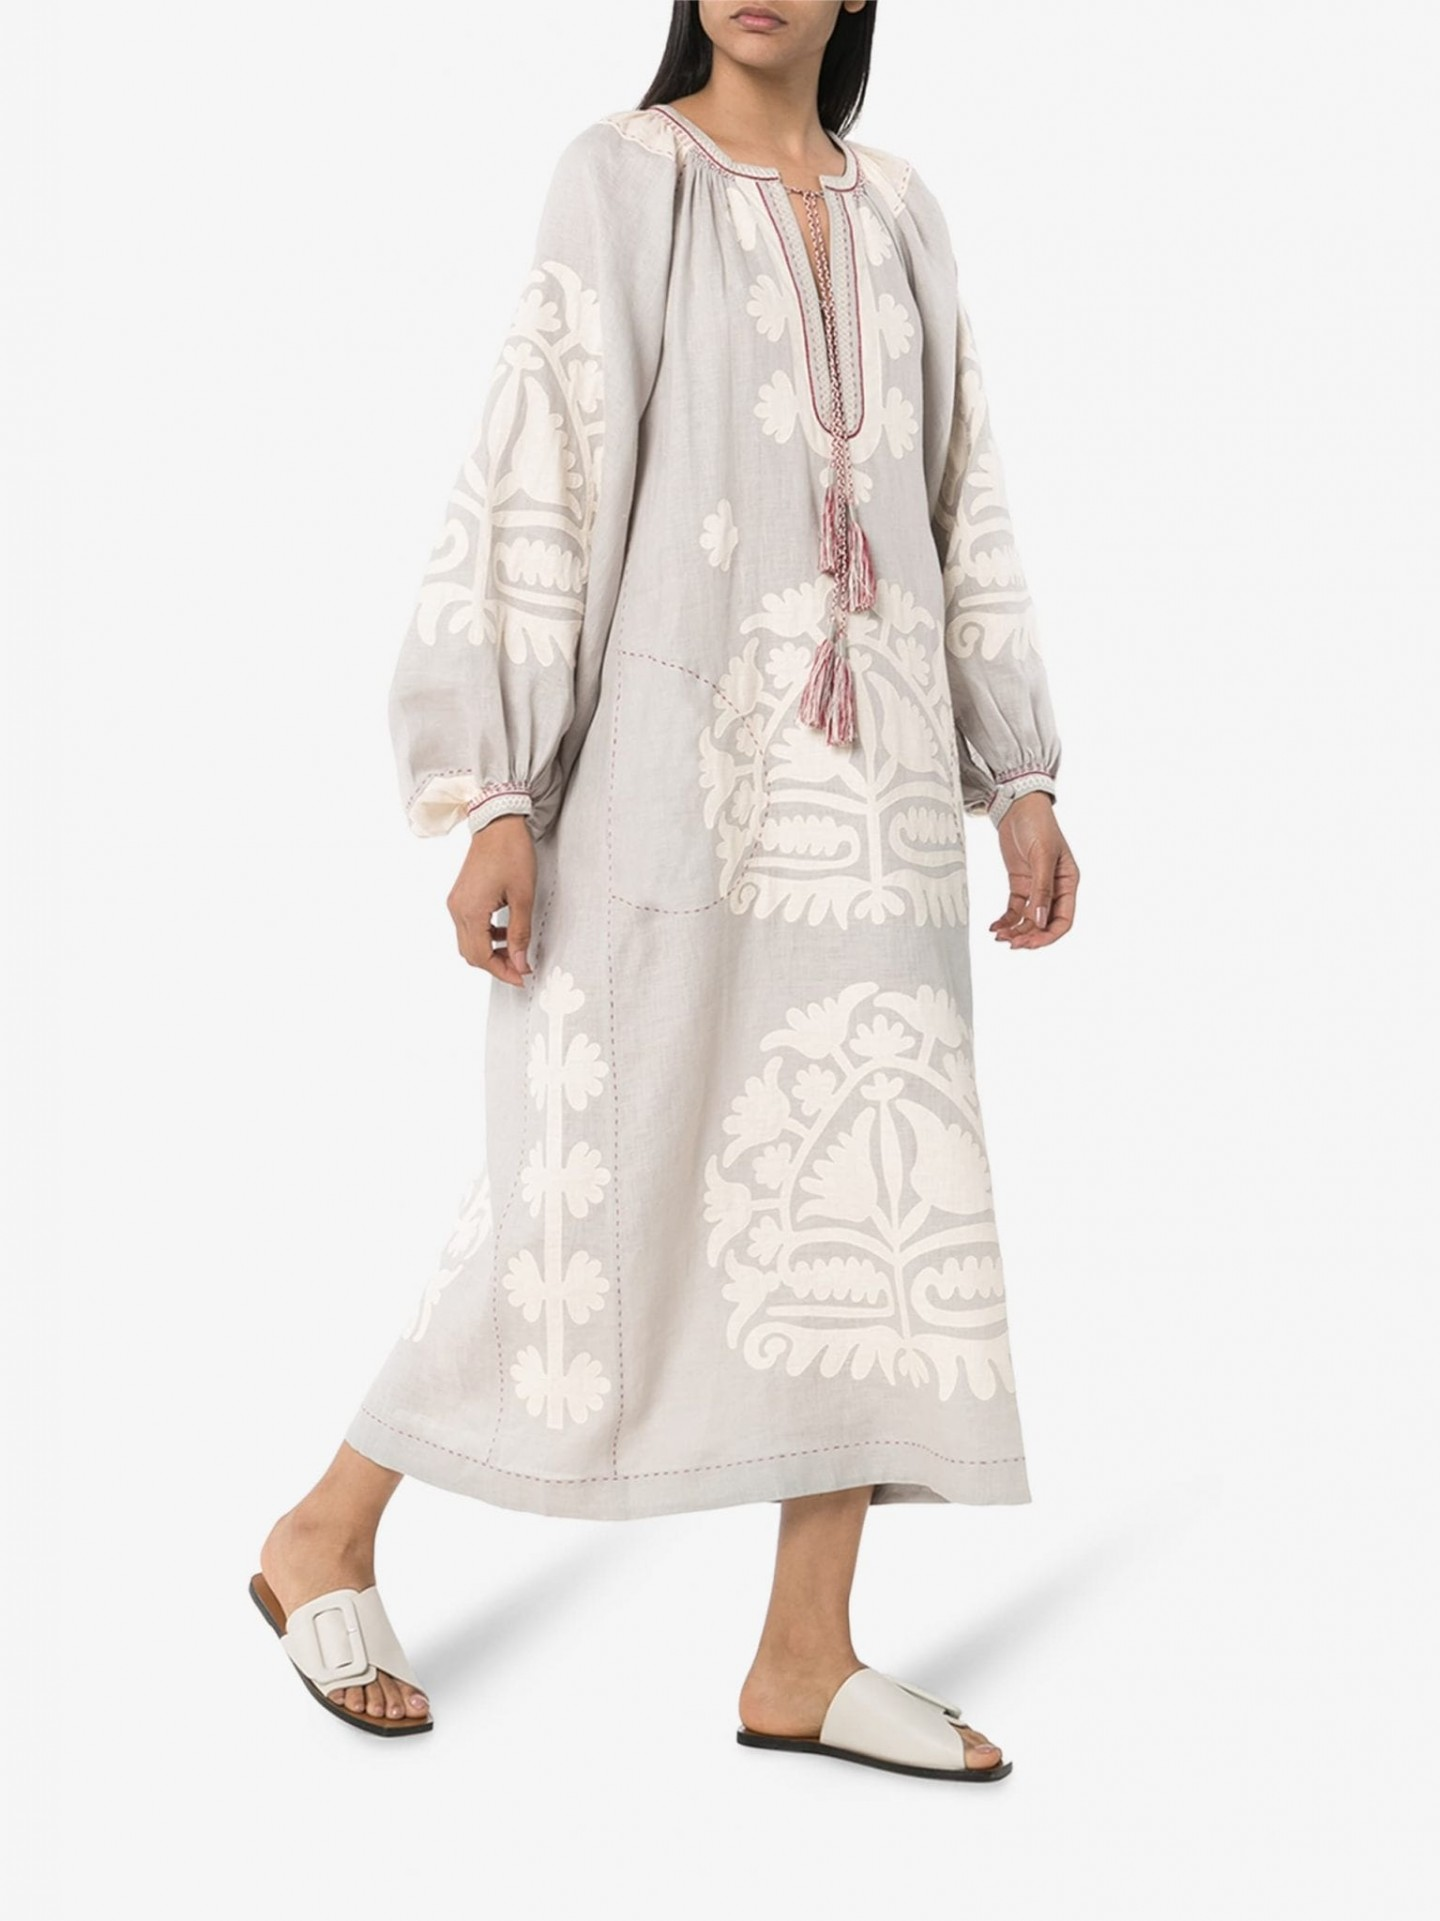 VITA KIN Fiji Embroidered Kaftan Dress